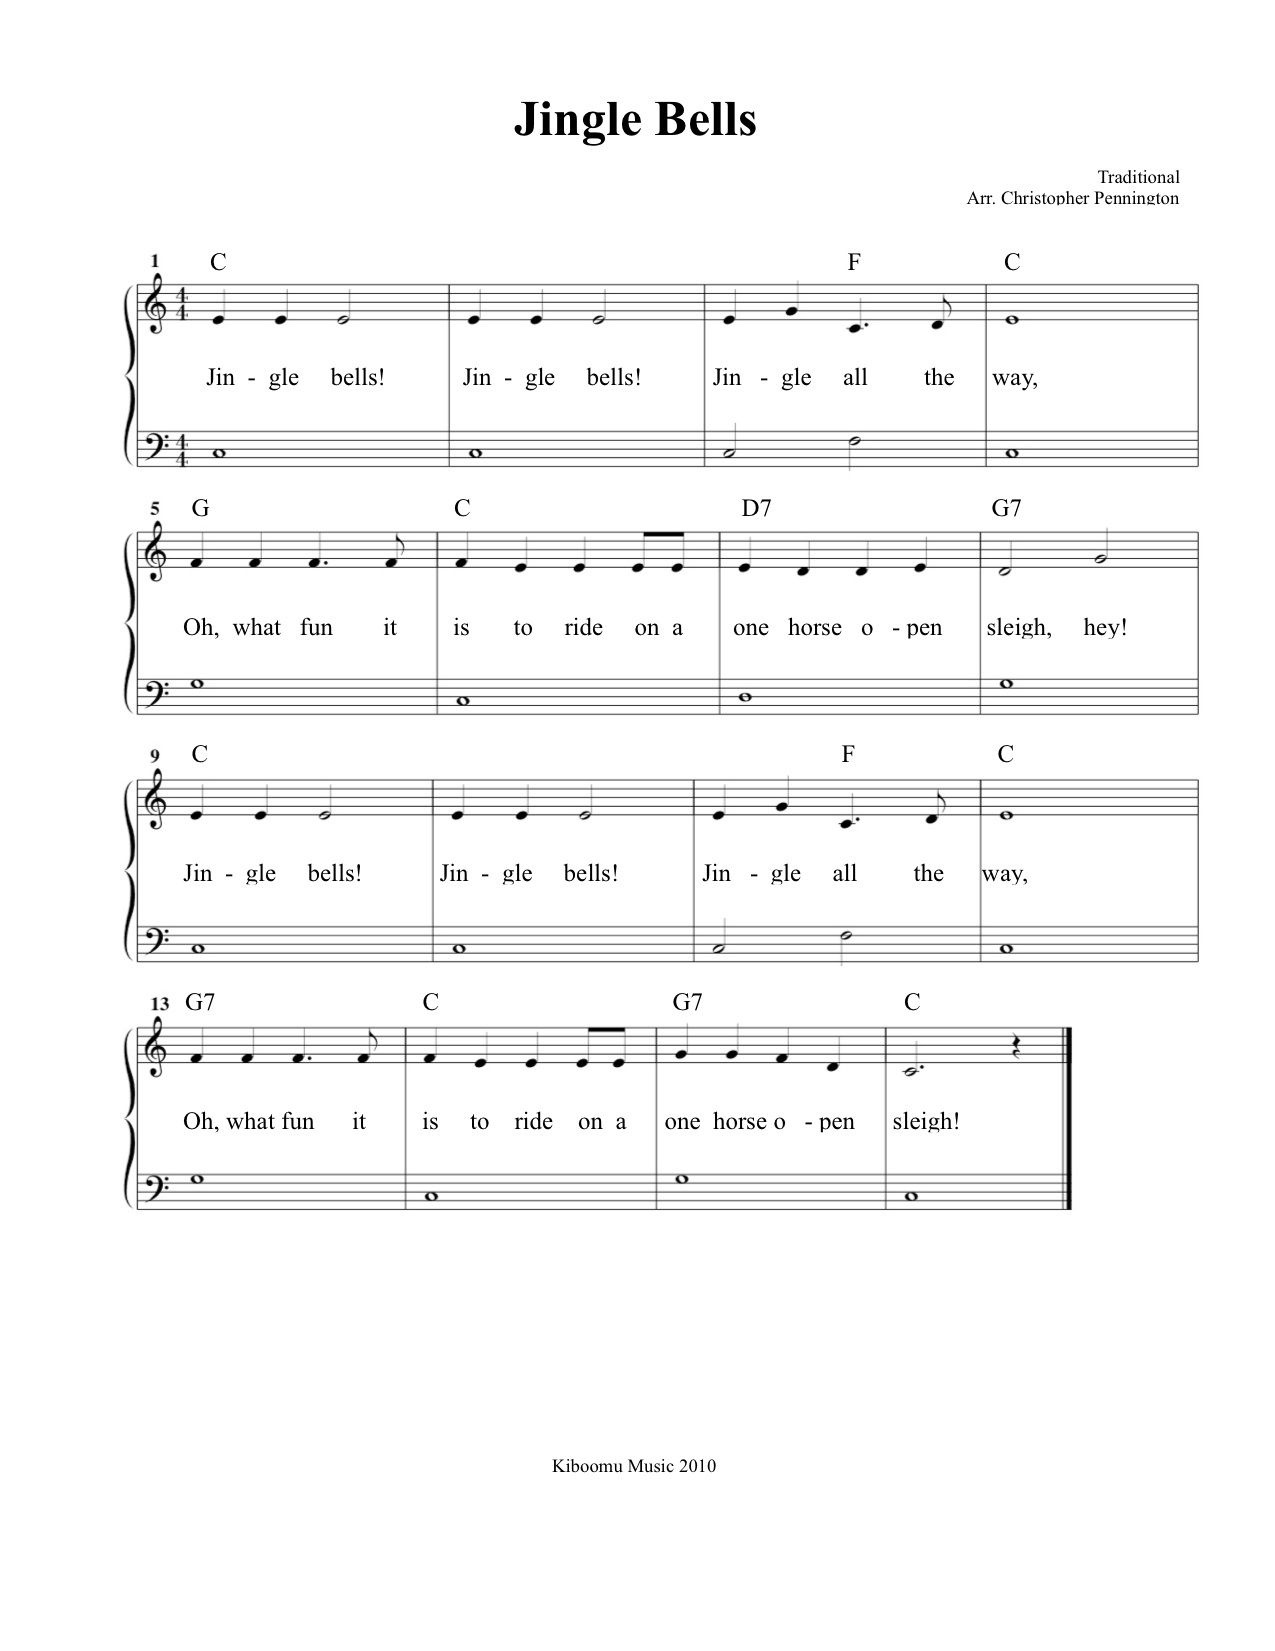 Free Printable Jingle Bells Sheet Music And Song For Kids! | Piano - Christmas Songs Piano Sheet Music Free Printable